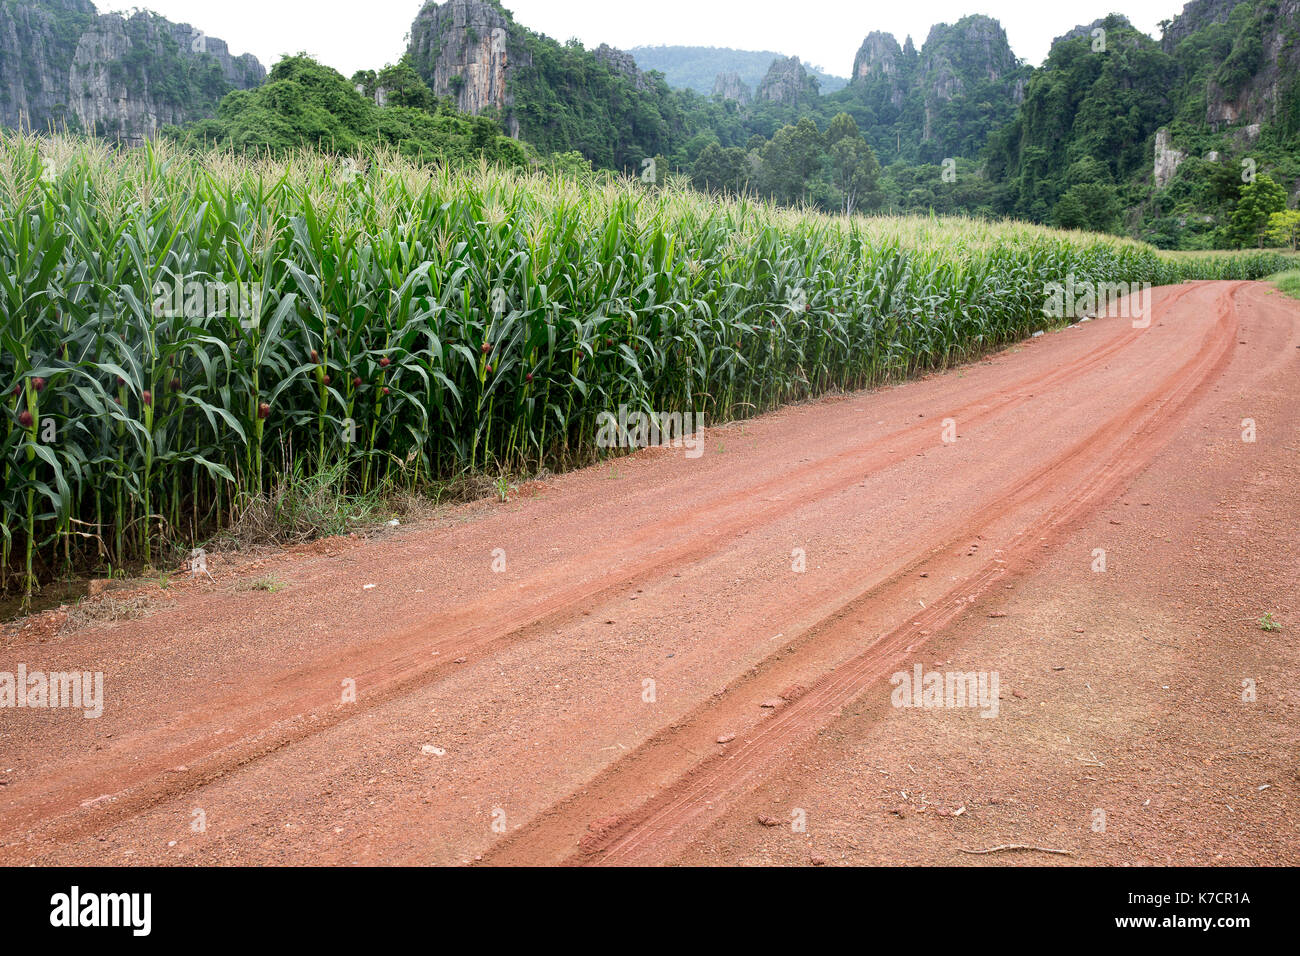 crops grown in laterite soil in india